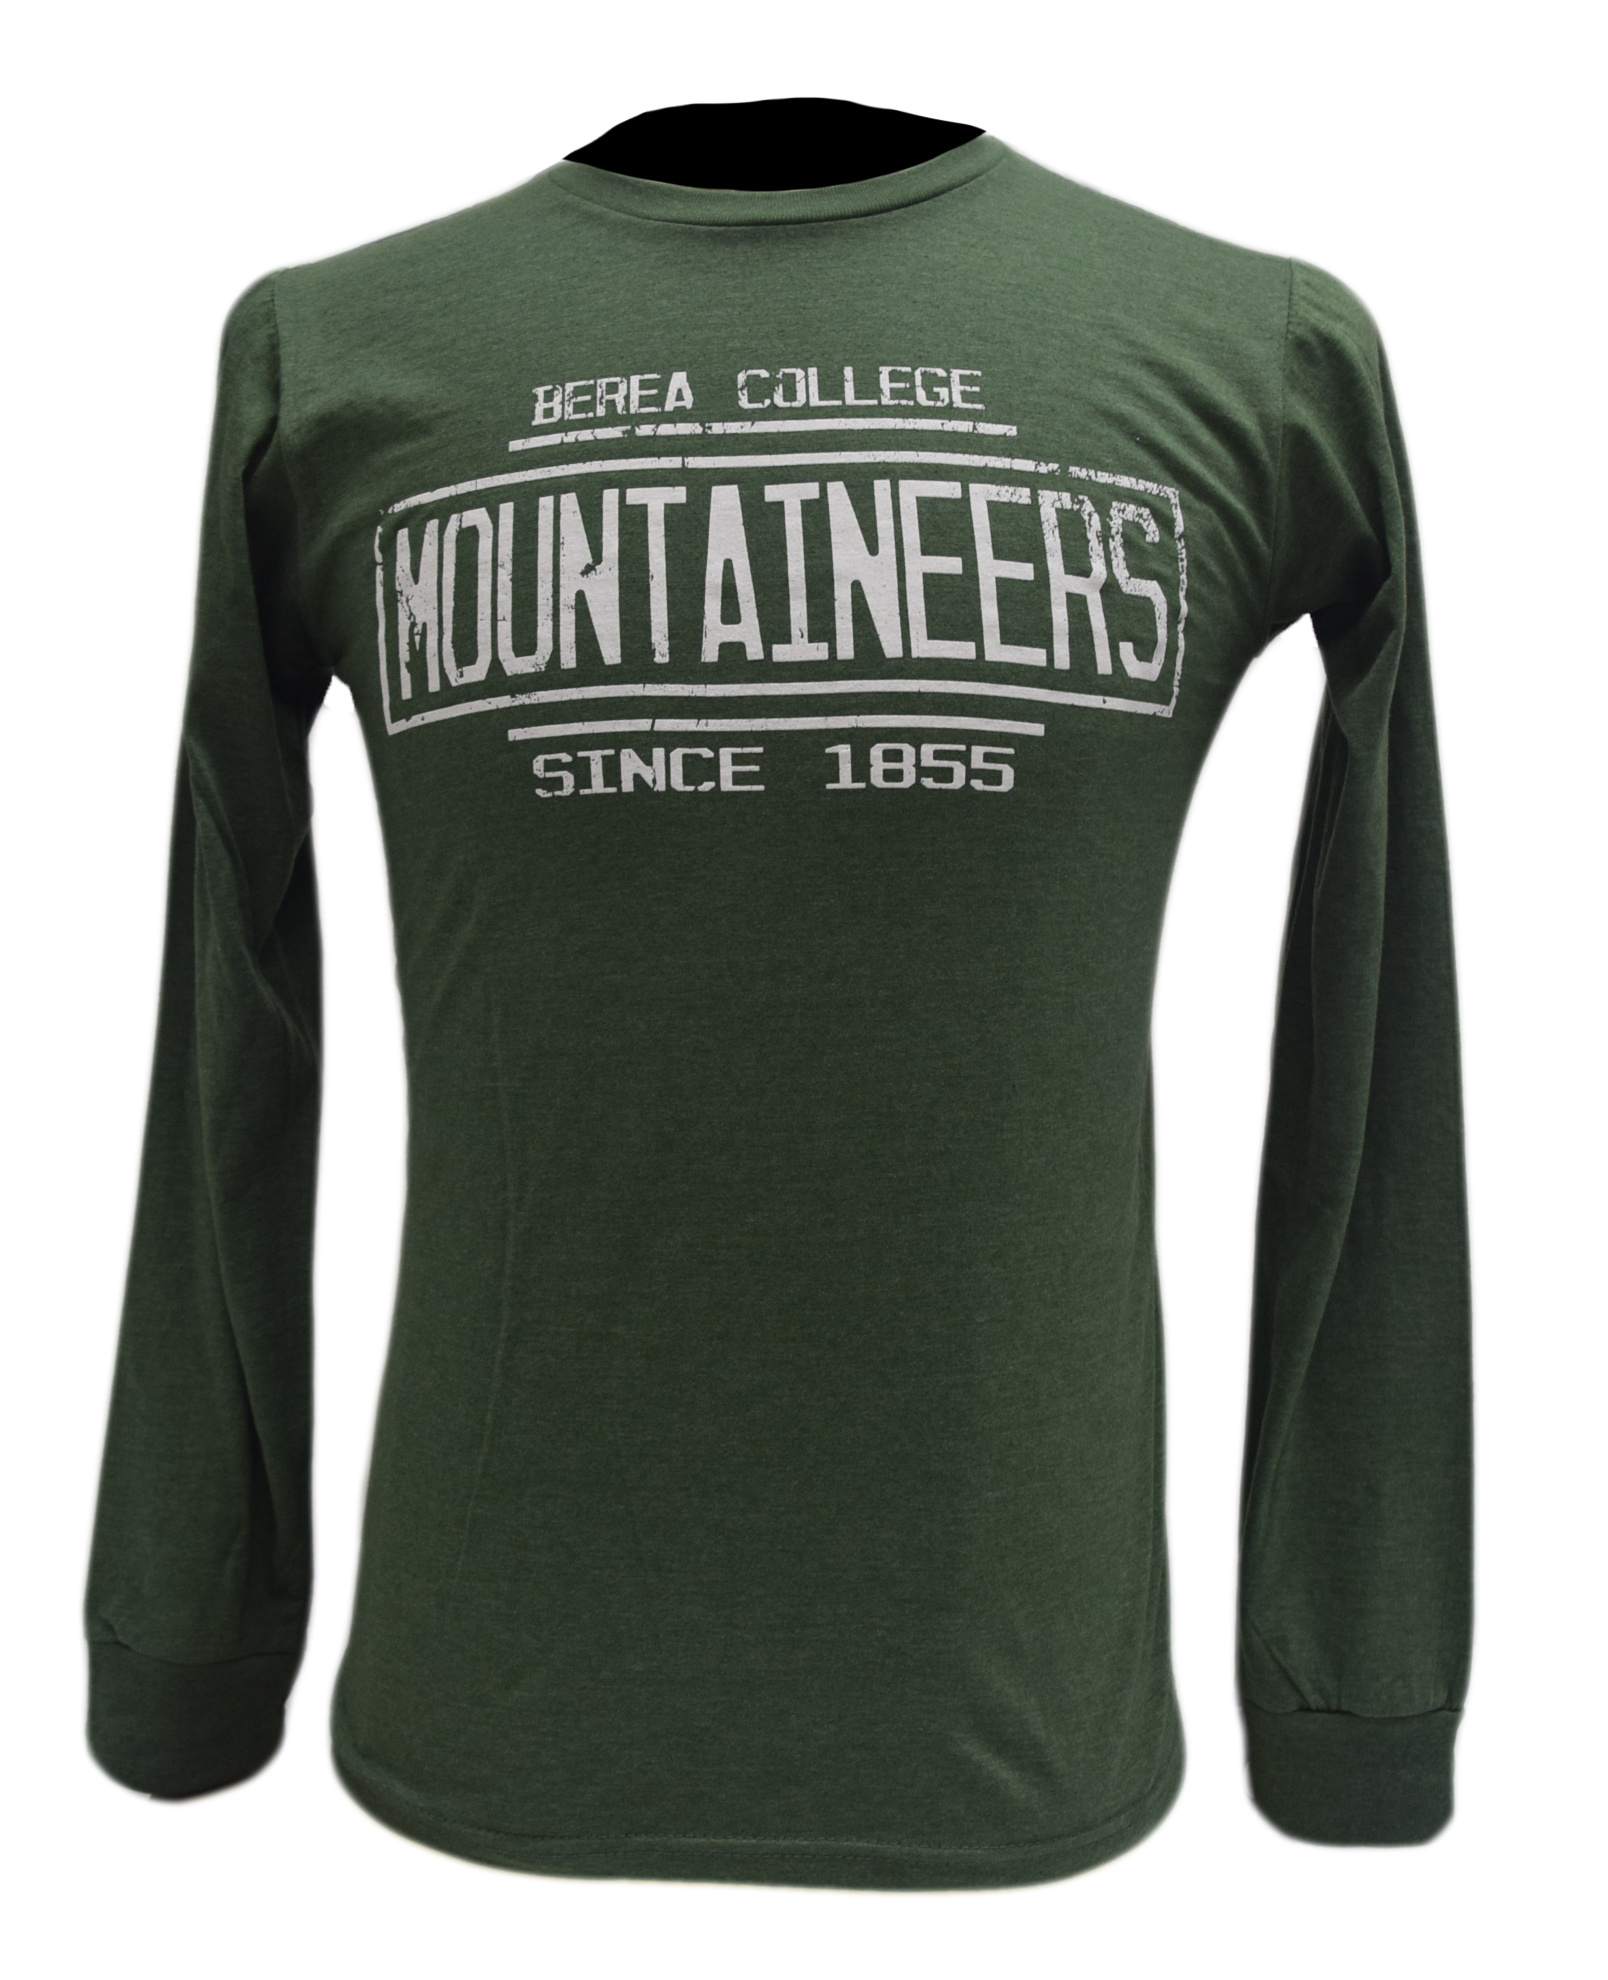 Berea College Mountaineers Since 1855 Long sleeve-2